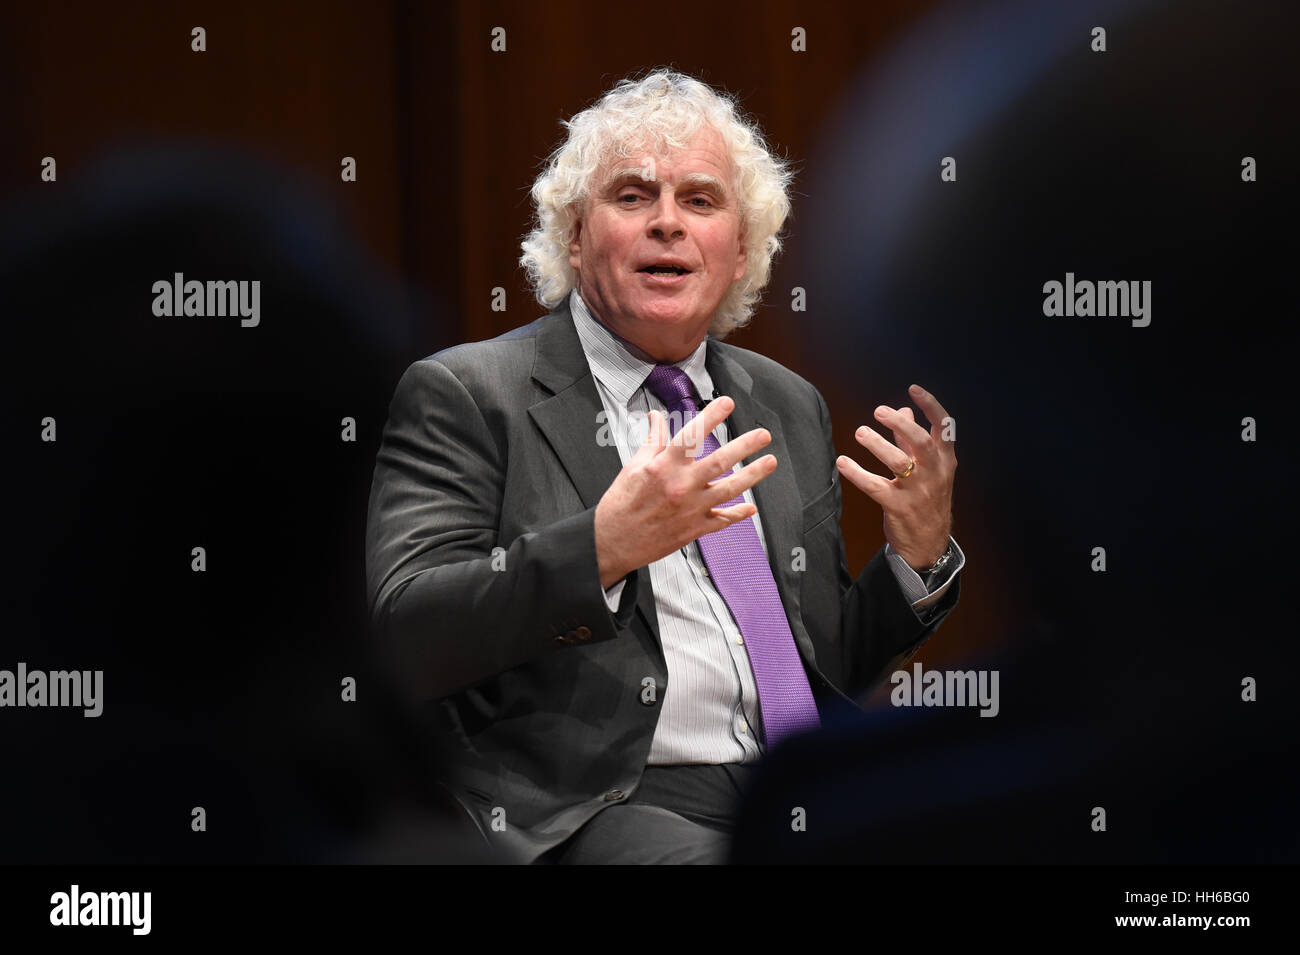 Sir Simon Rattle unveils his future plans for the London Symphony